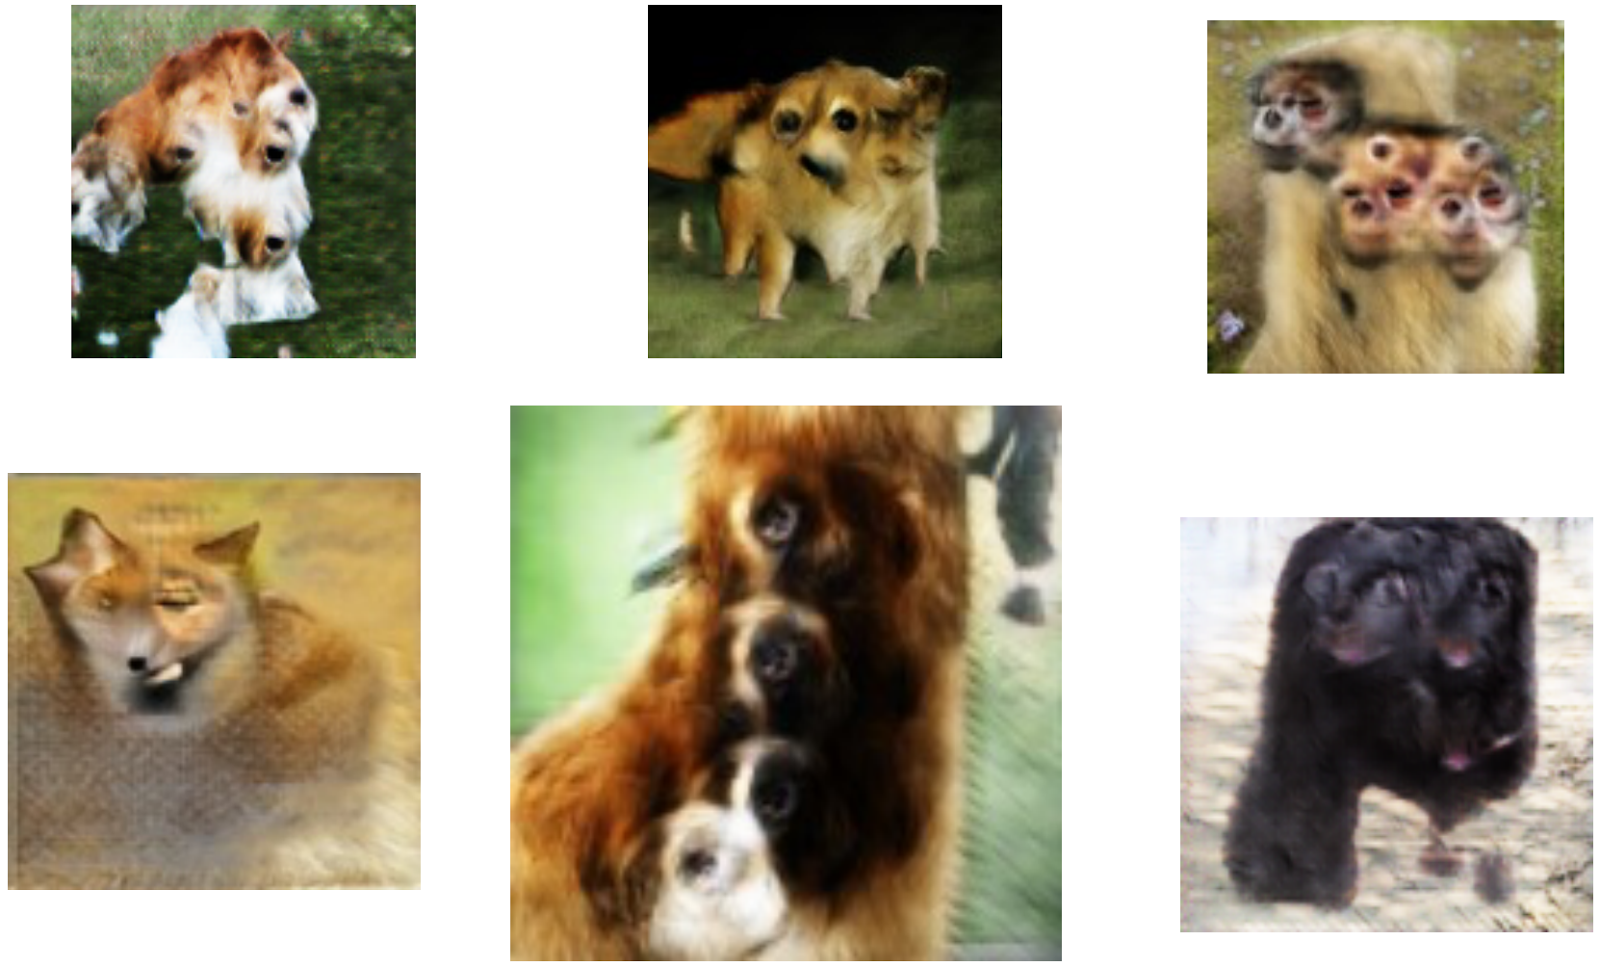 Examples Of Animals Generated With The Wrong Number Of Body Parts, Produced  Using Previous Gan Models Trained On 128x128 Imagenet Dataset